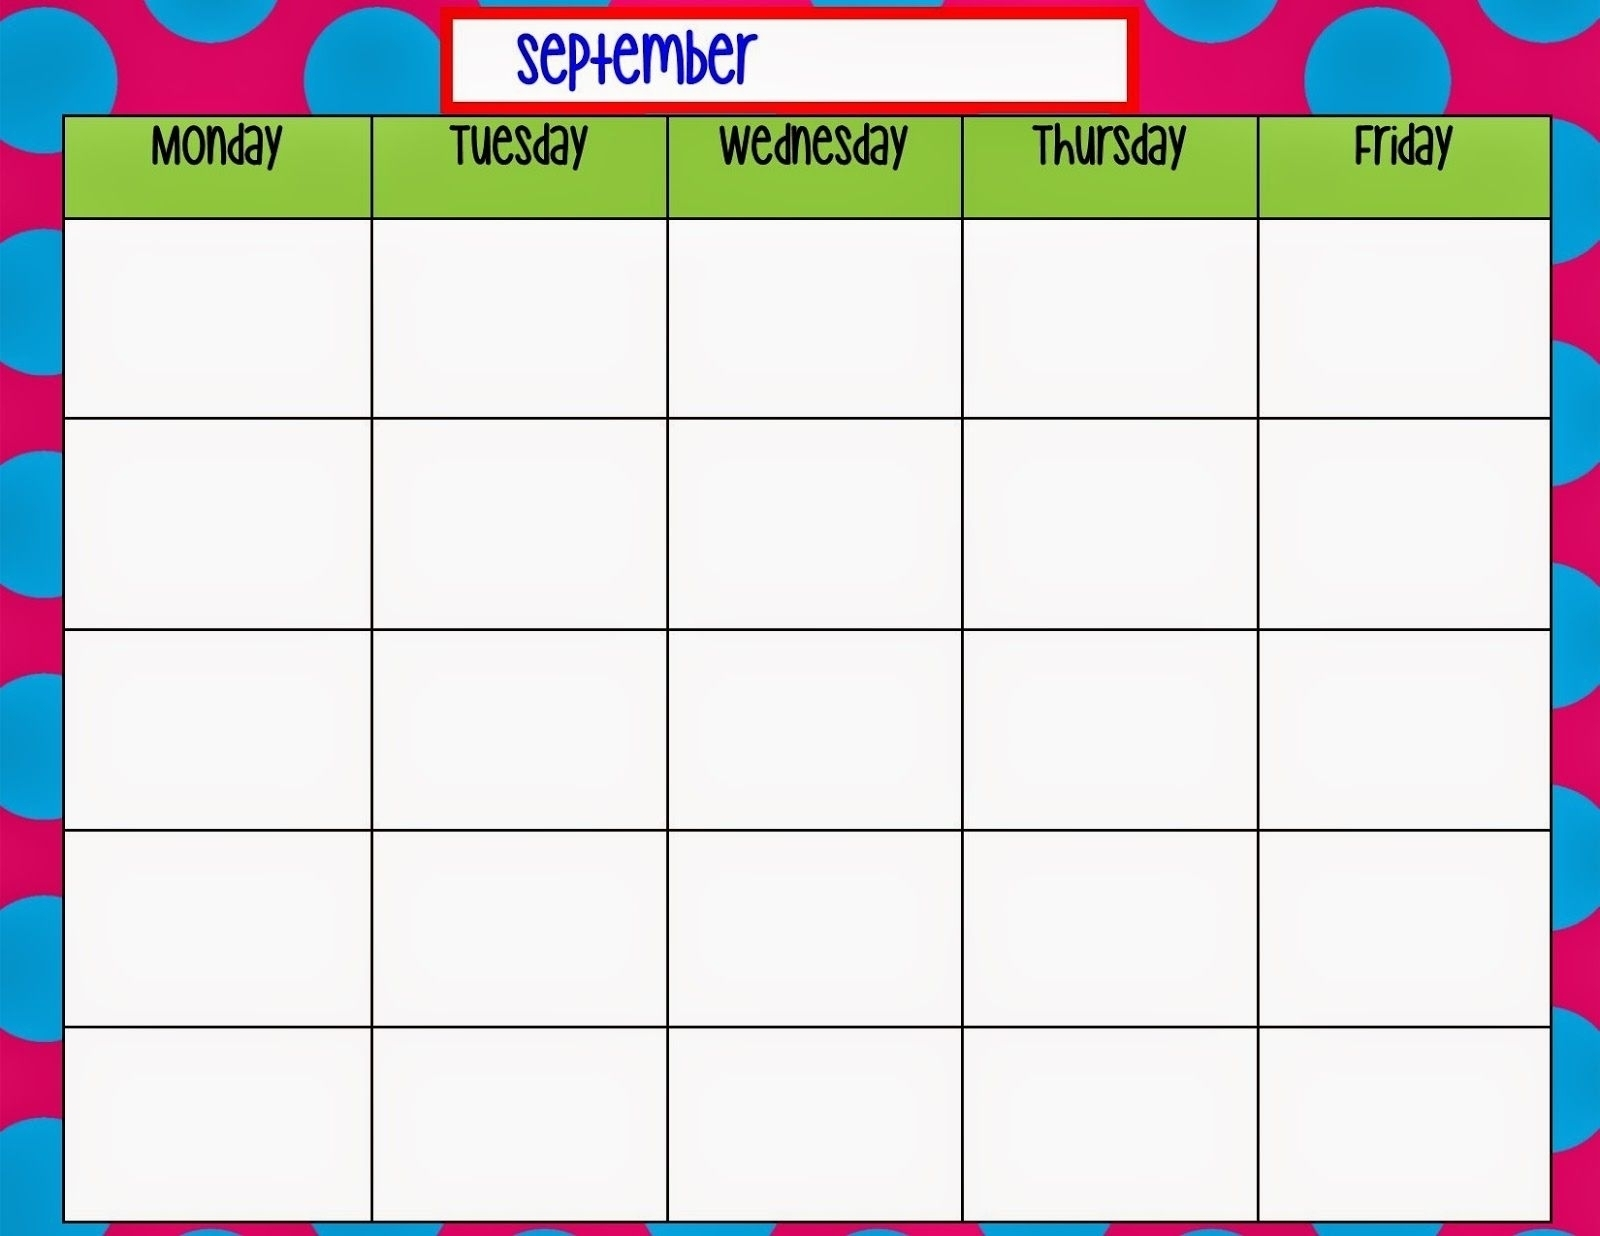 Single Week Planner Page Monday-Friday | Template Calendar Printable throughout Single Week Planner Page Monday-Friday